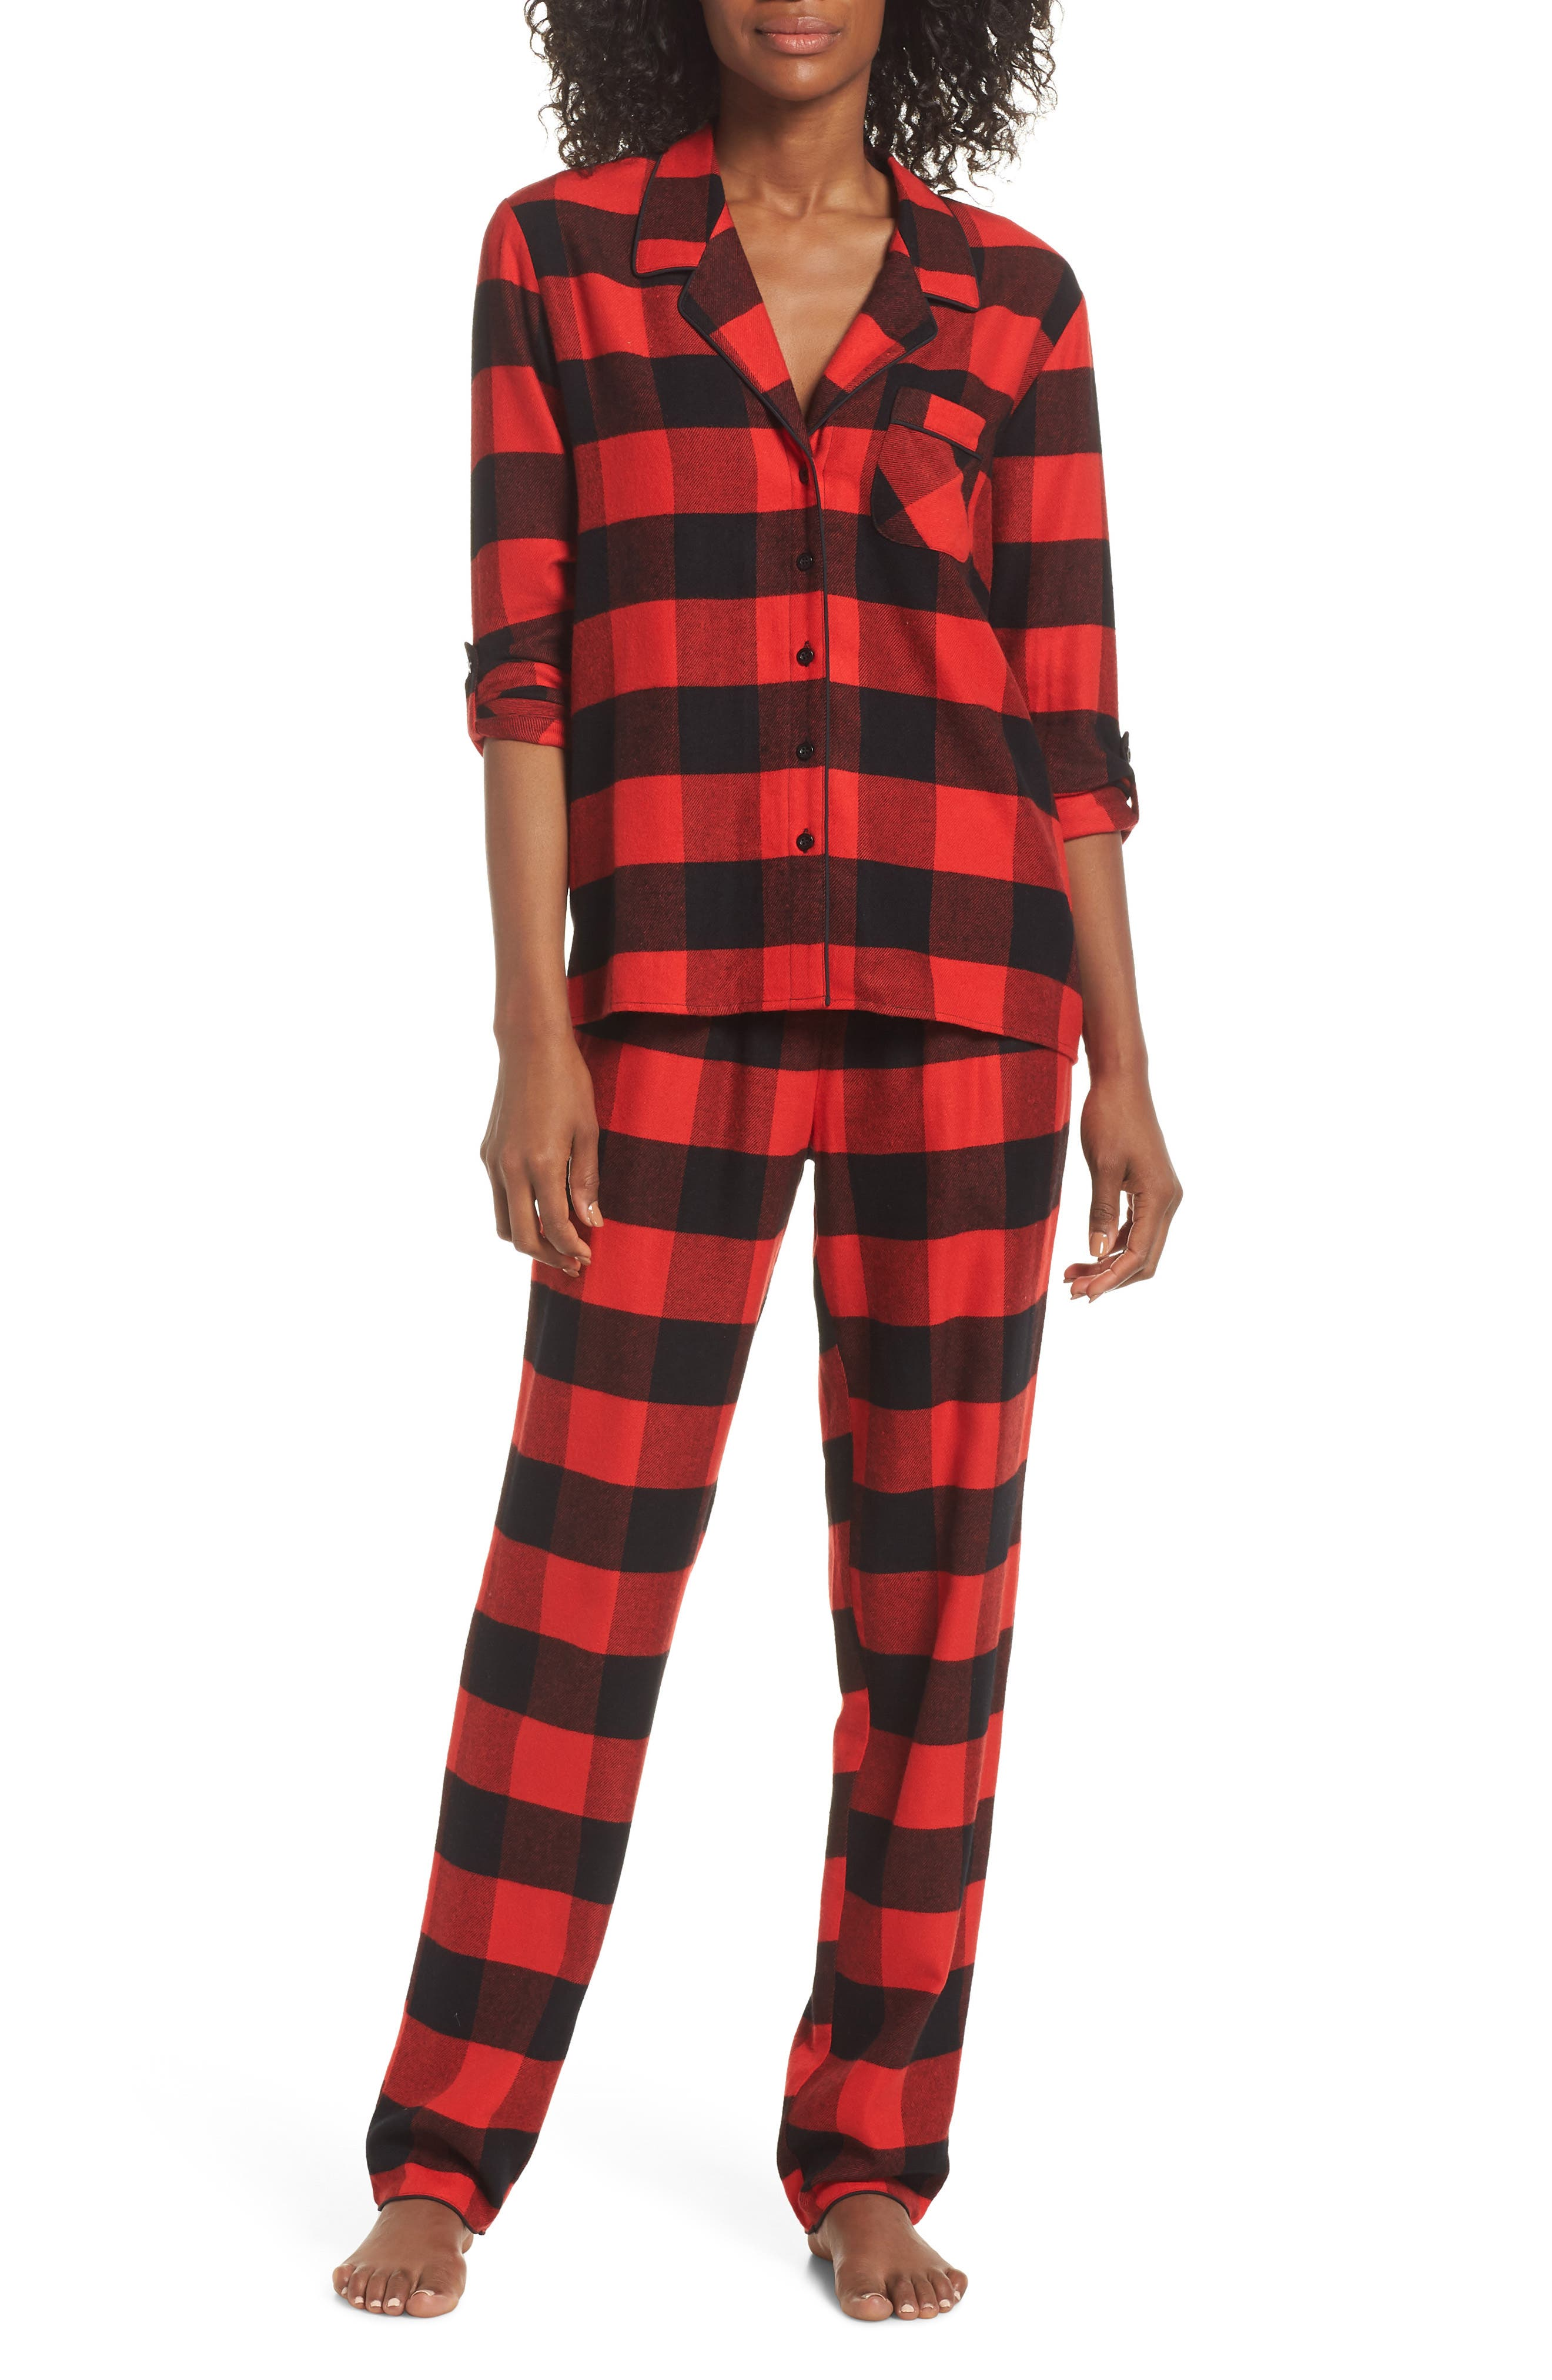 Lingerie Starlight Flannel Pajamas,                             Main thumbnail 1, color,                             610